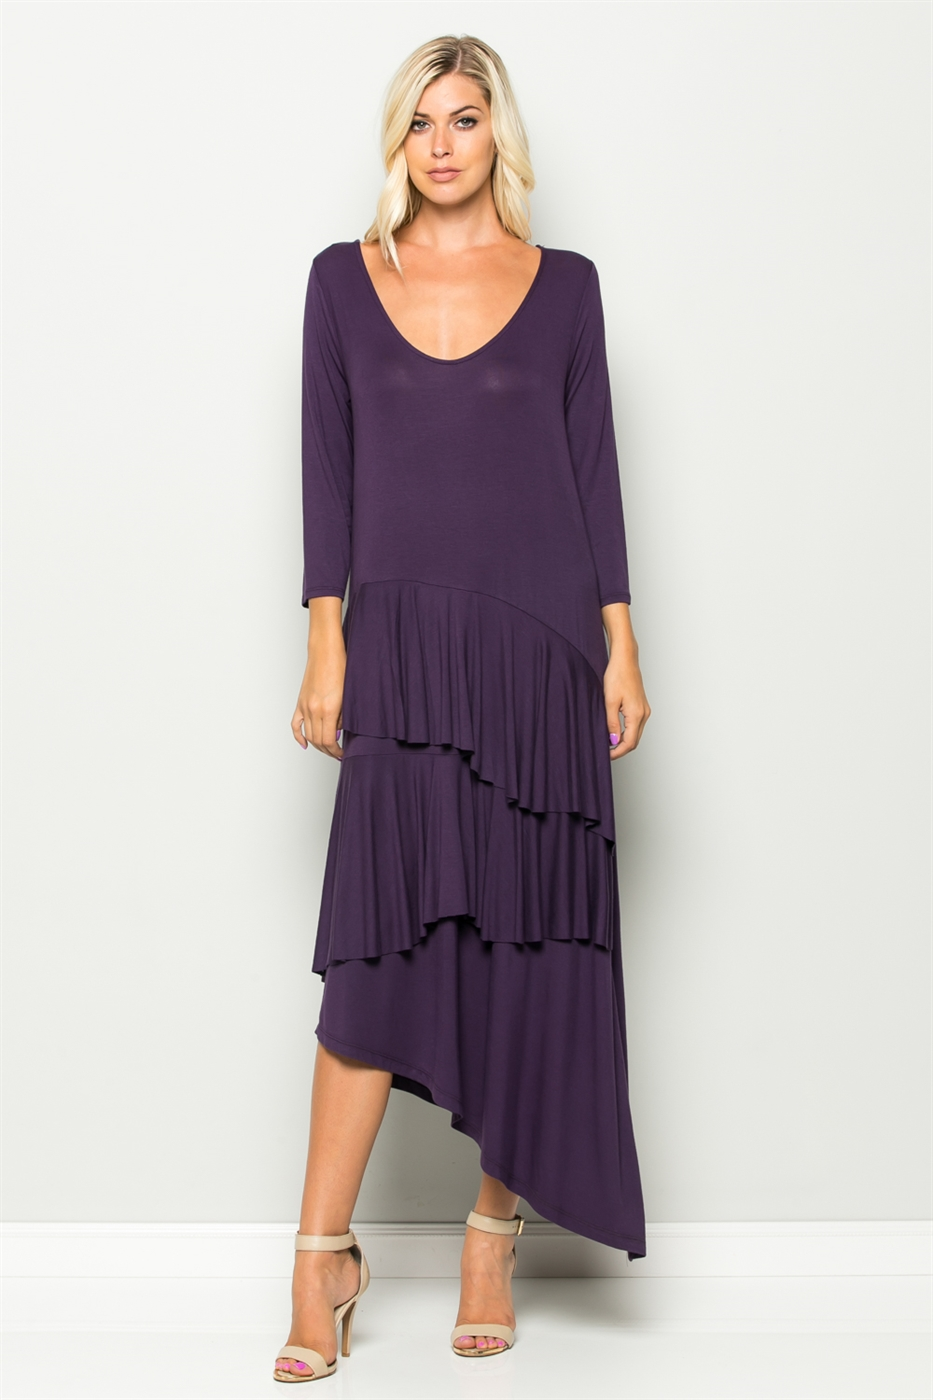 Ruffled Asymmetrical Hem Dress - orangeshine.com